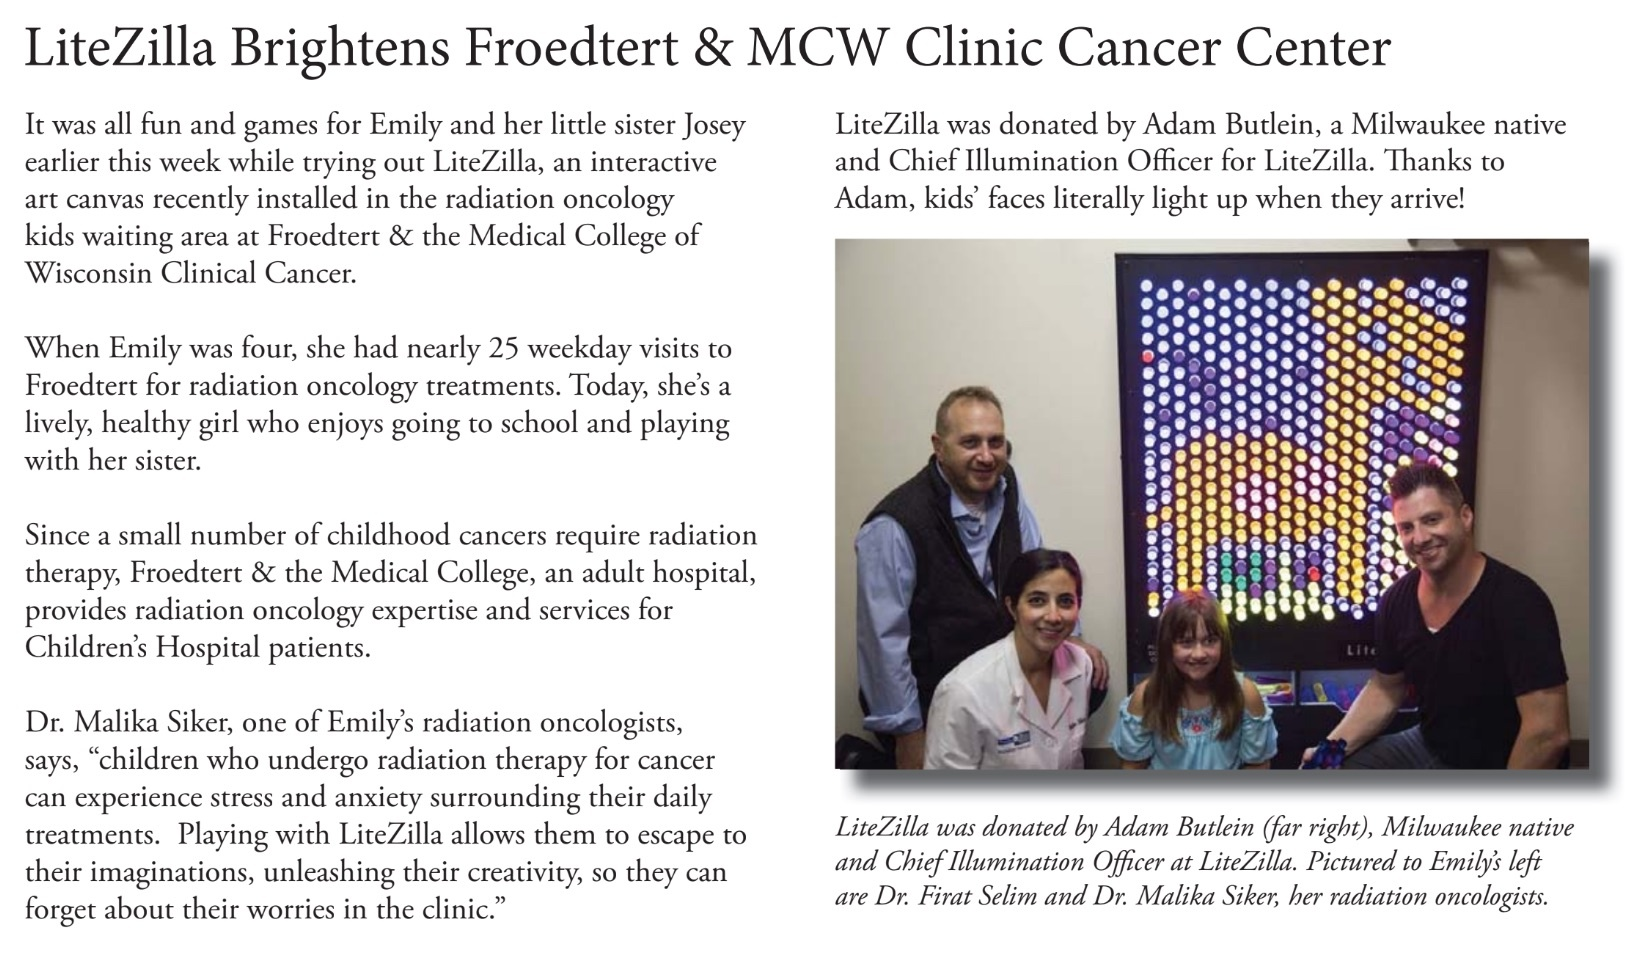 MCW Clinic